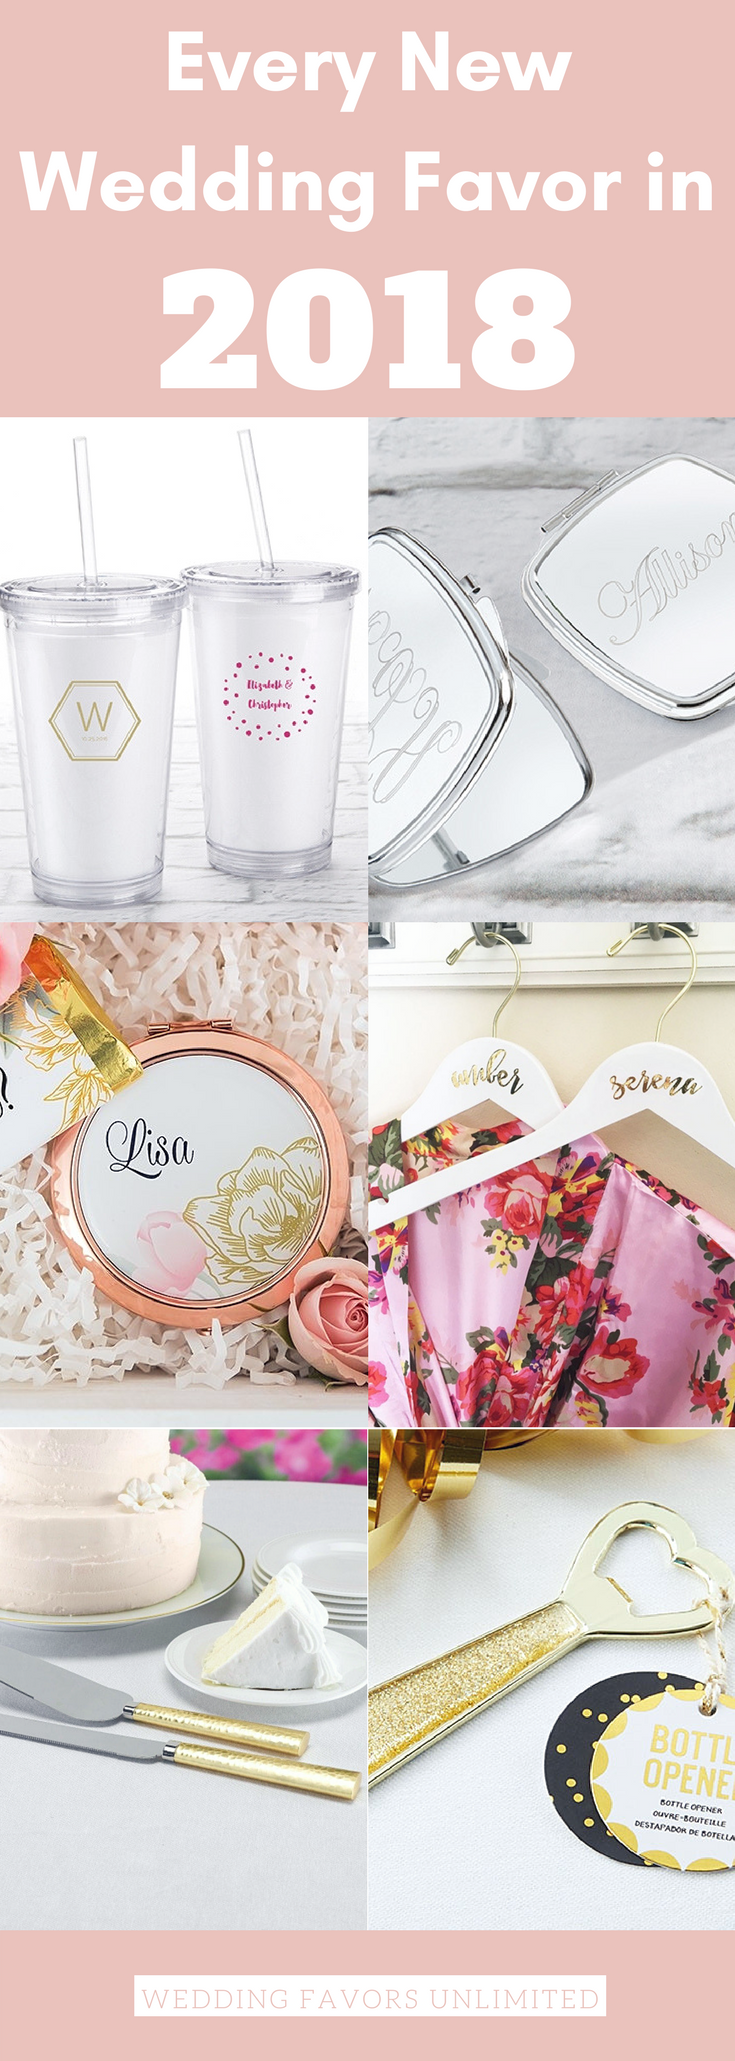 Every New Wedding Favor in 2018 - Wedding Favors Unlimited ...